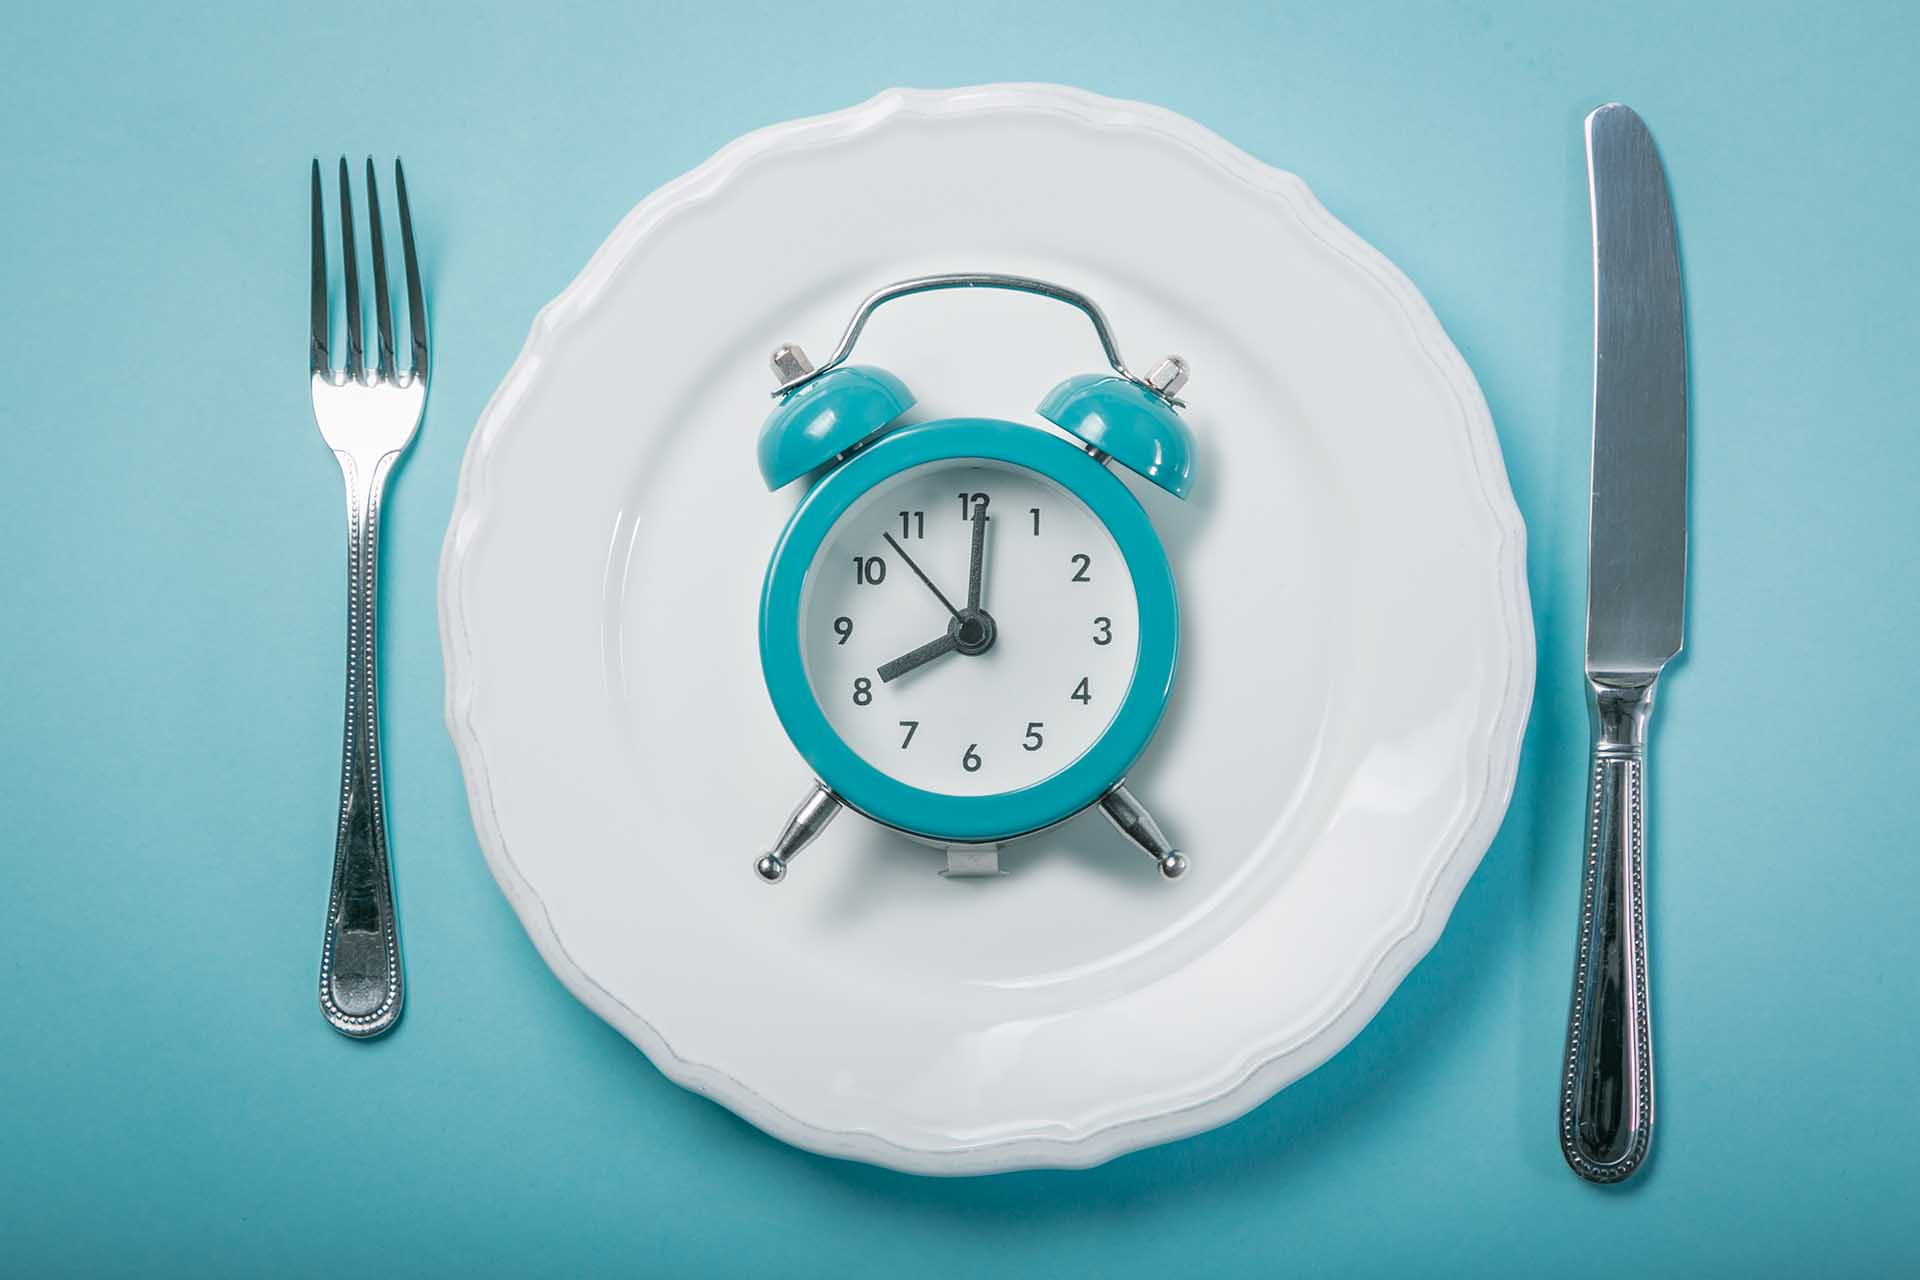 The facts about intermittent fasting